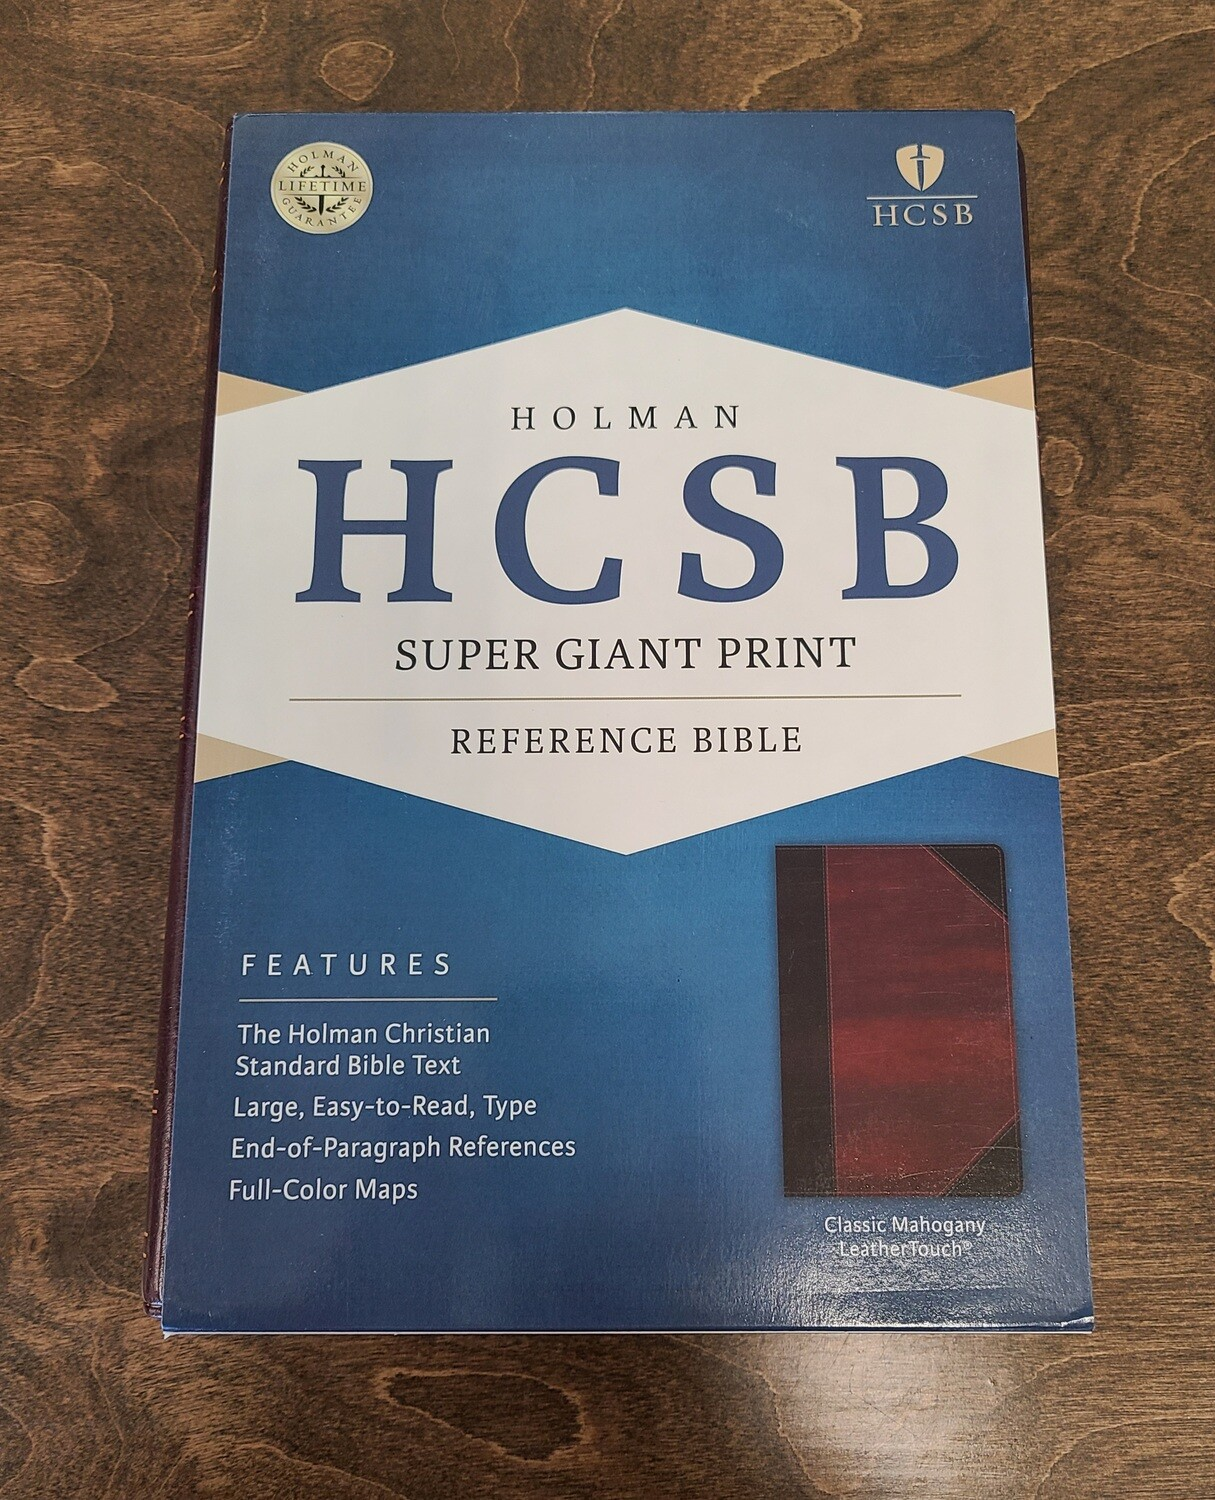 HCSB Super Giant Print Reference Bible - Mahogany LeatherTouch